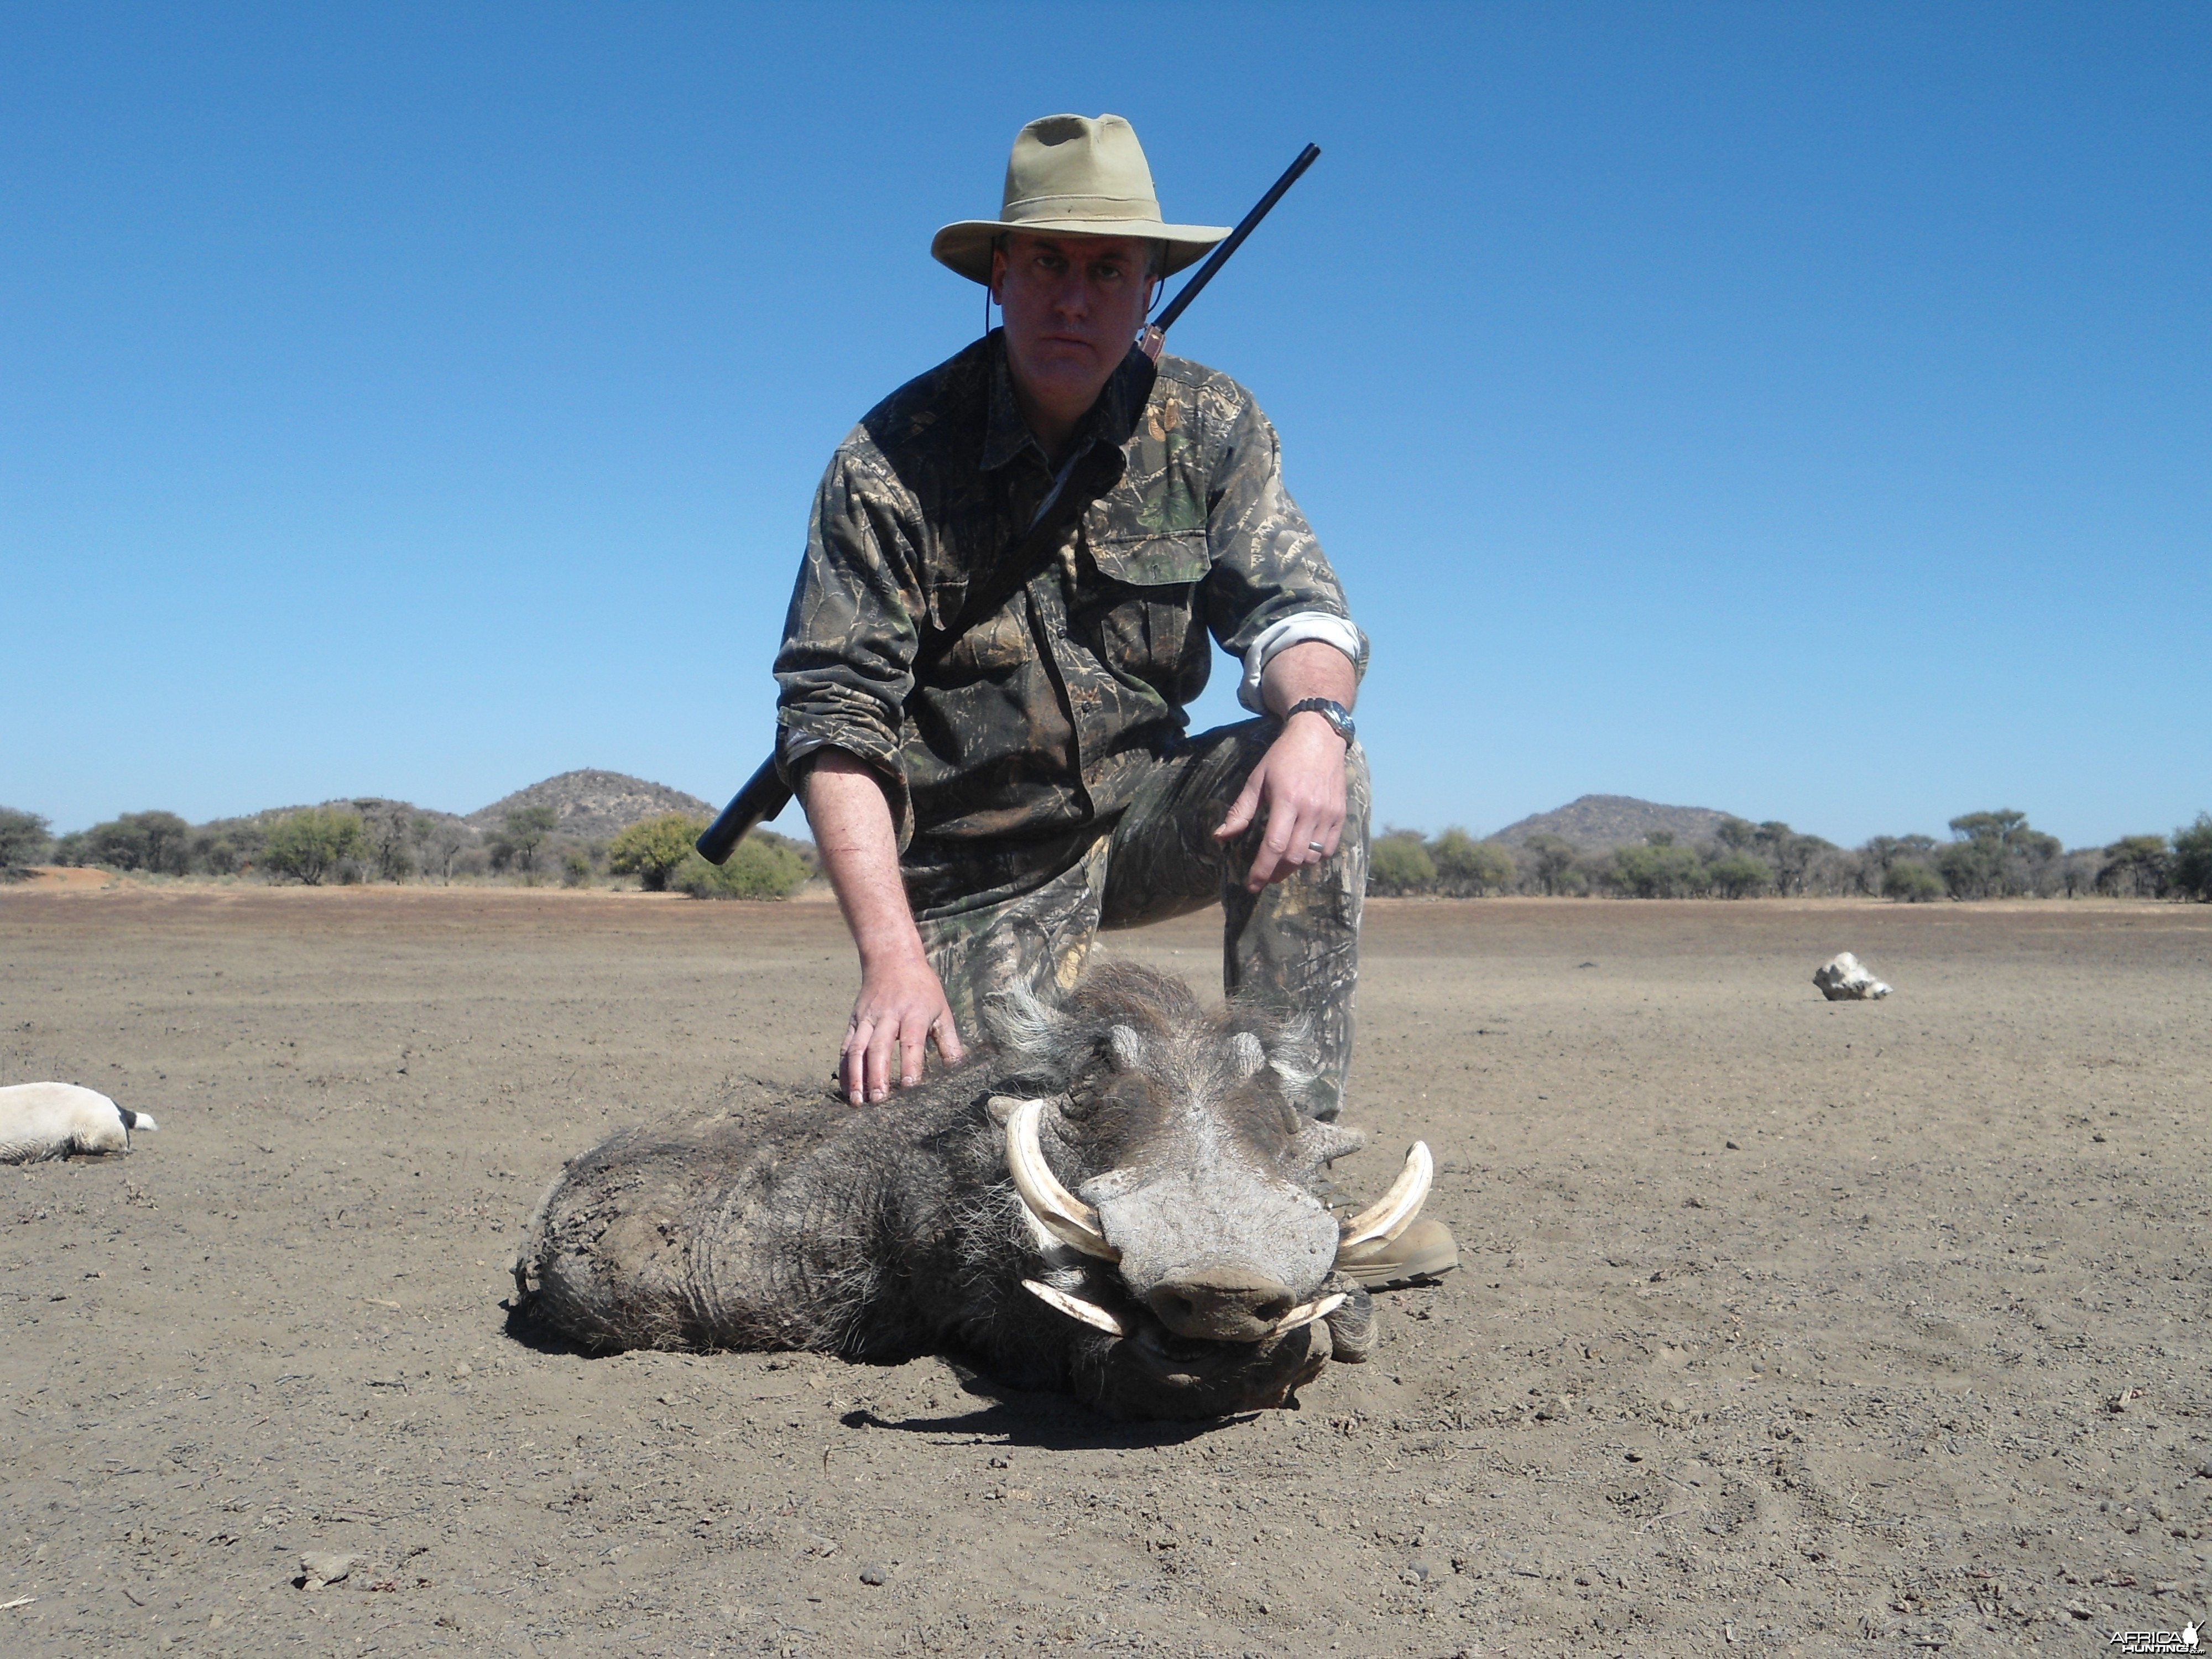 Warthog hunted with Ozondjahe Hunting Safaris in Namibia